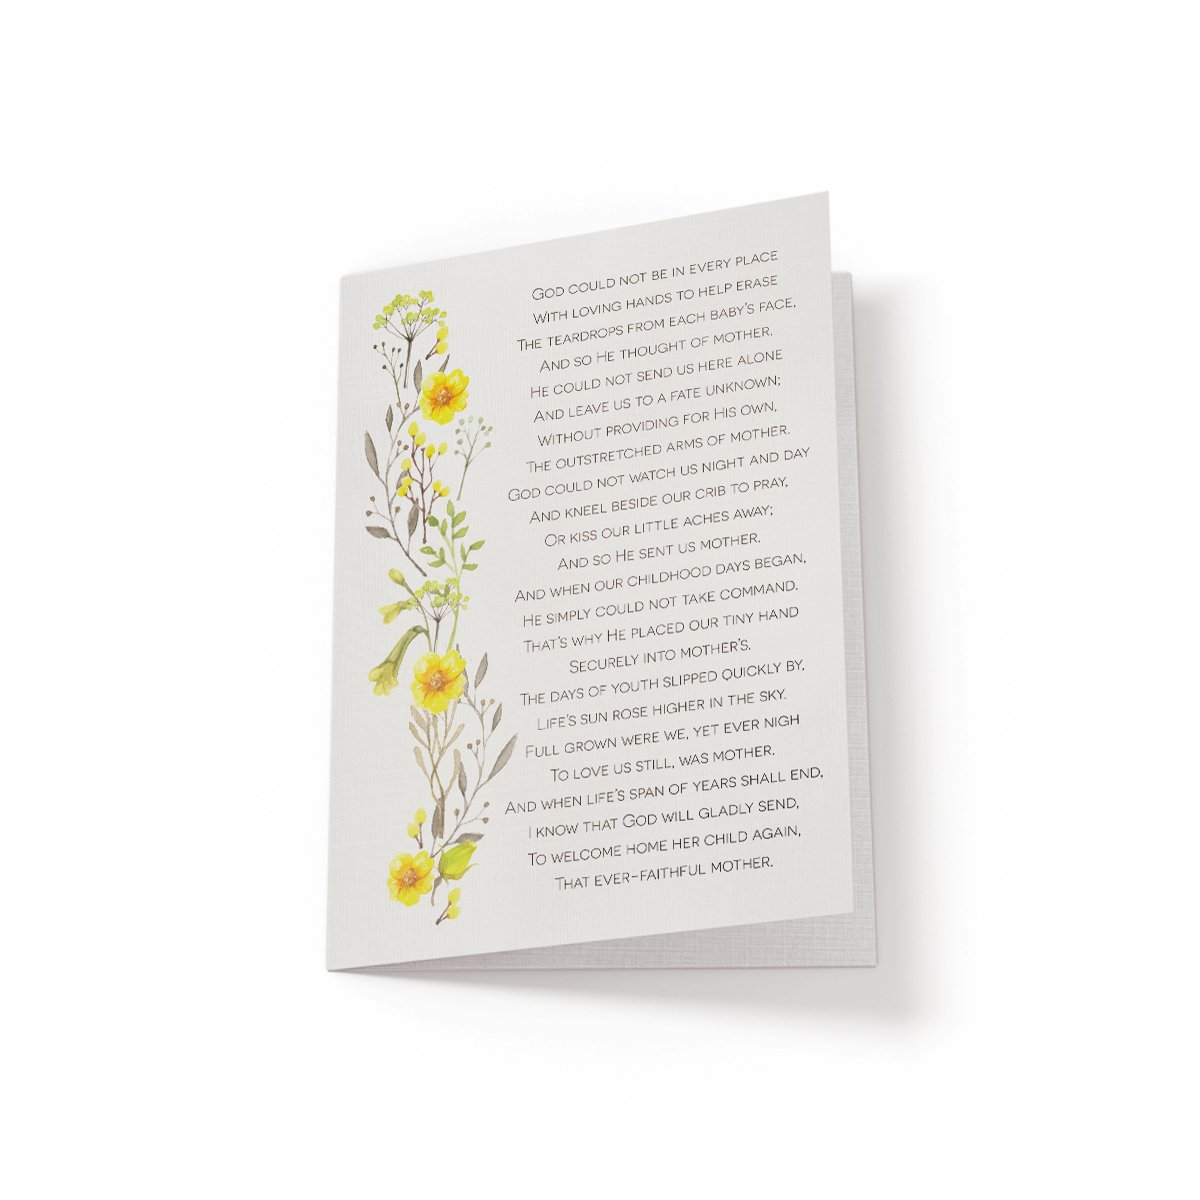 God could not be in every place - Greeting Card - Netties Expressions